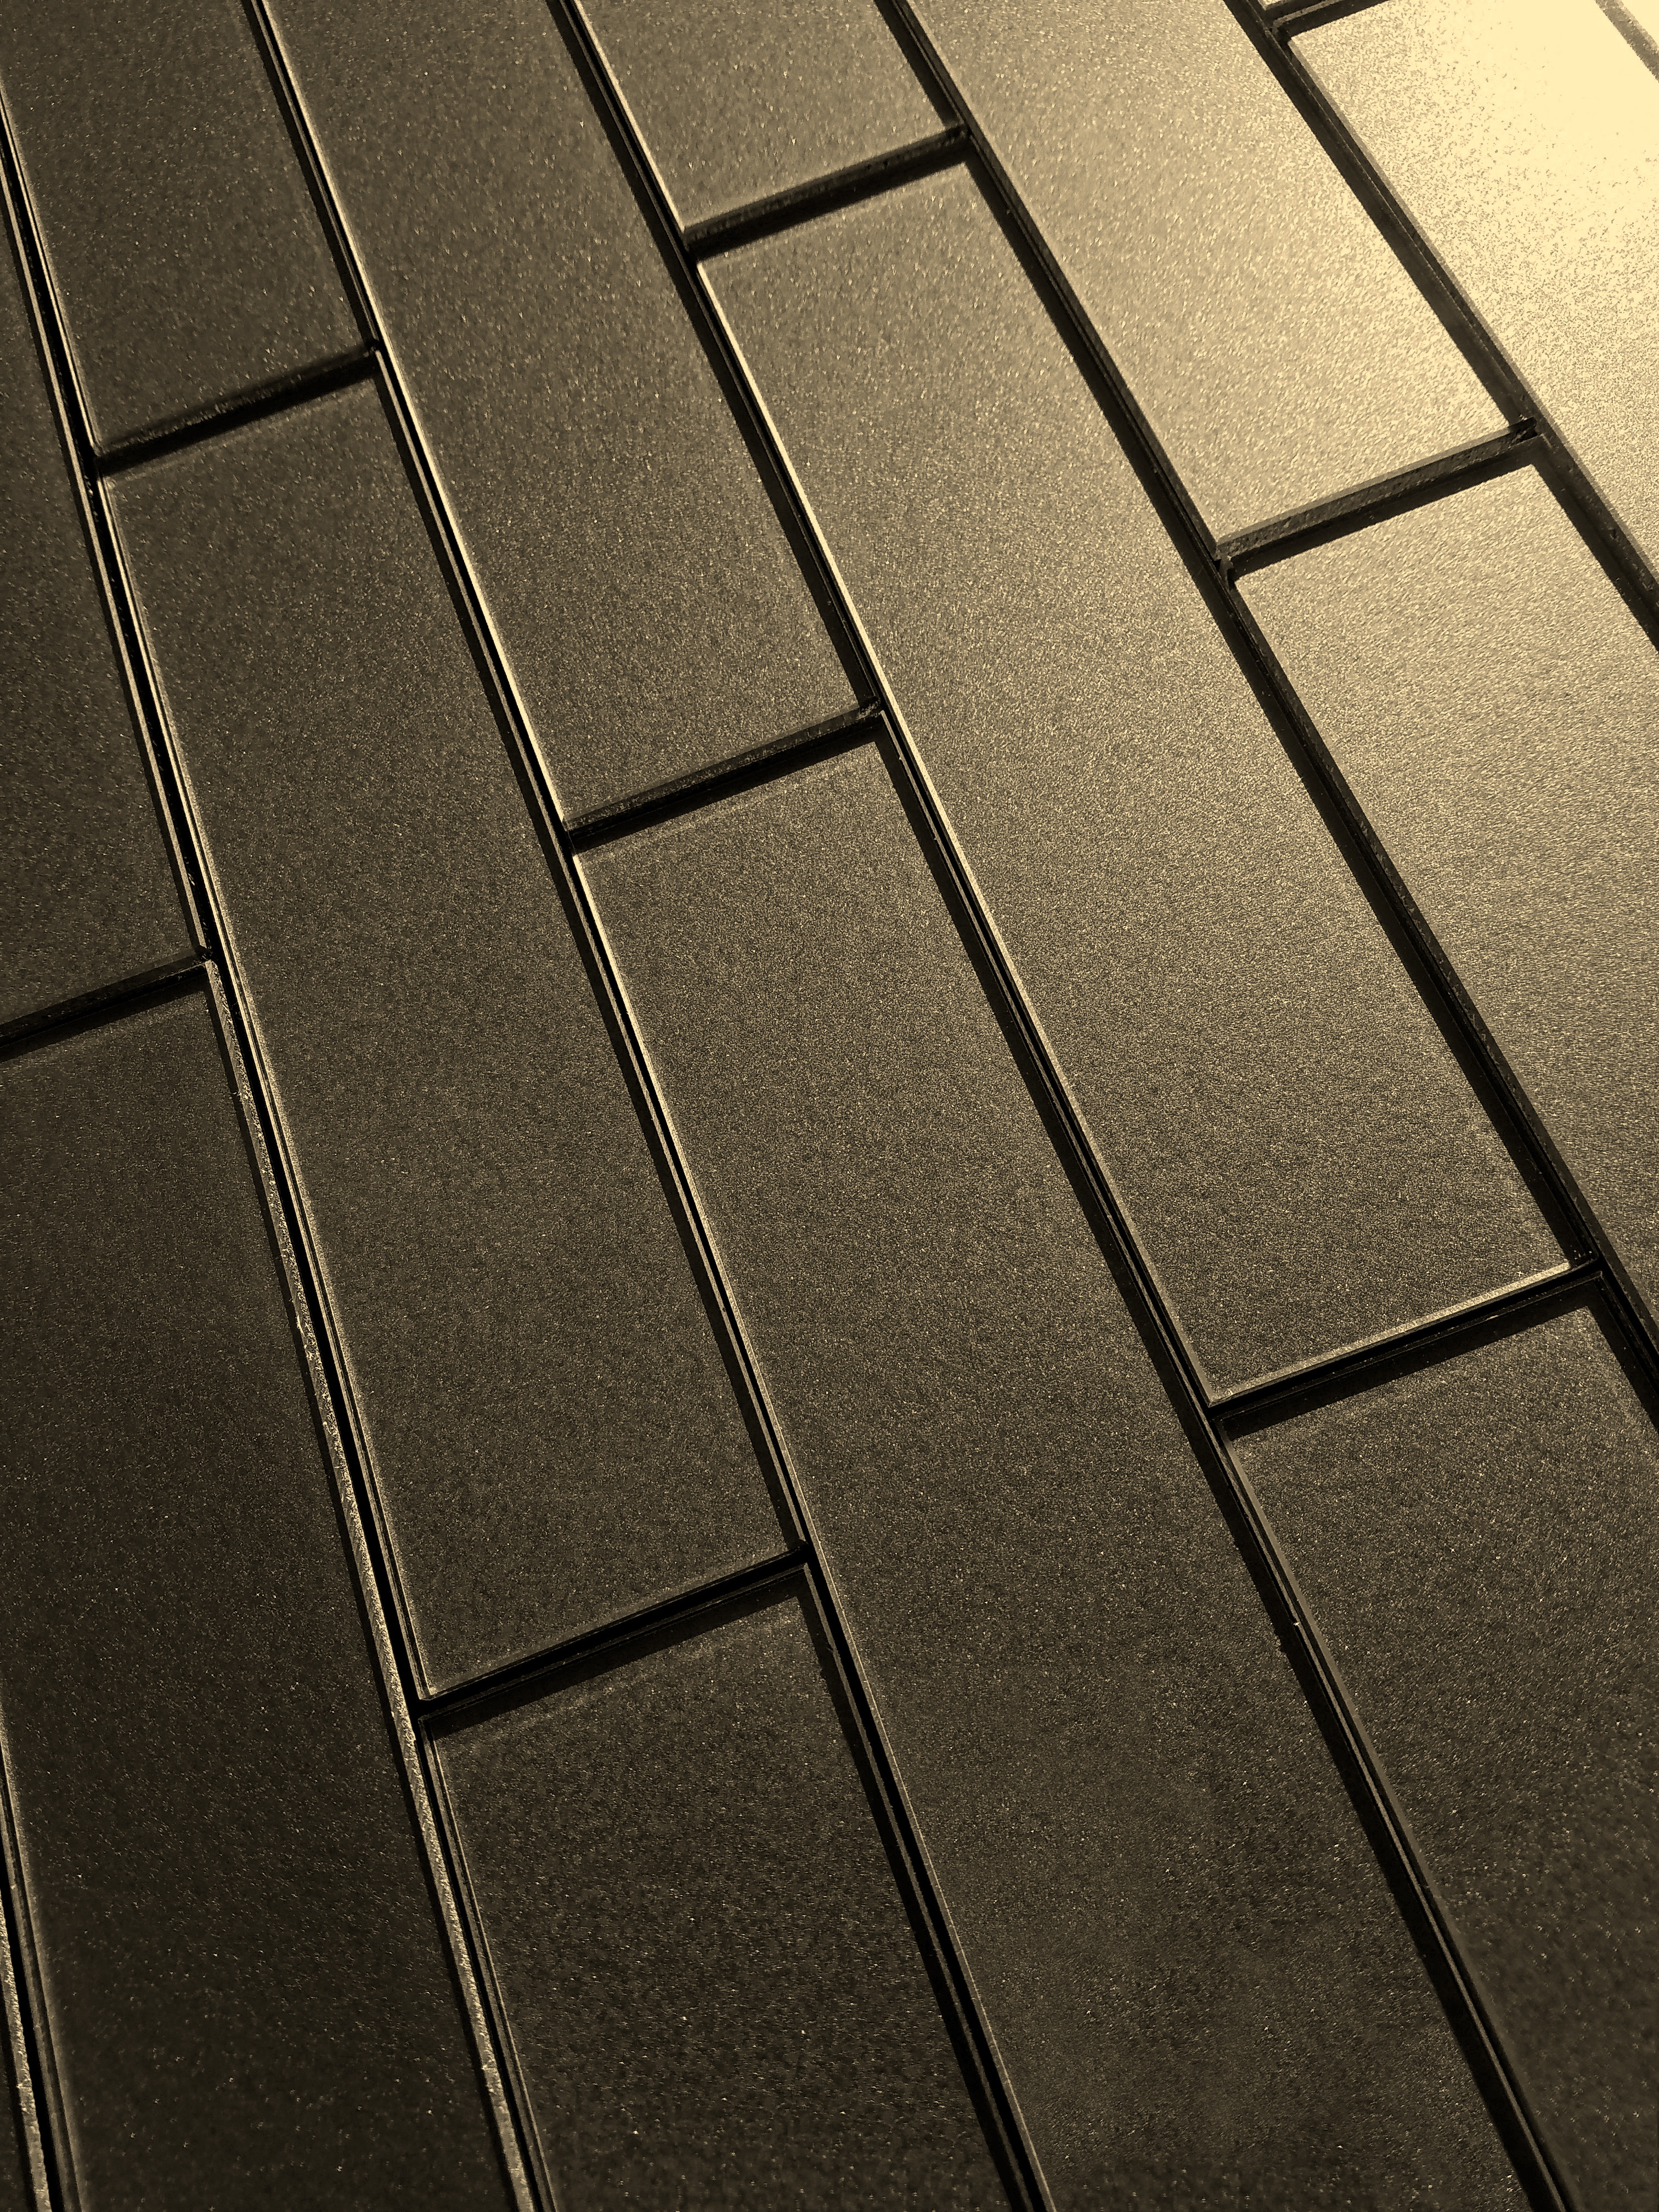 Forever 2 in x 8 in Glass Loose Tile in ETERNAL BRONZE Glossy Straight